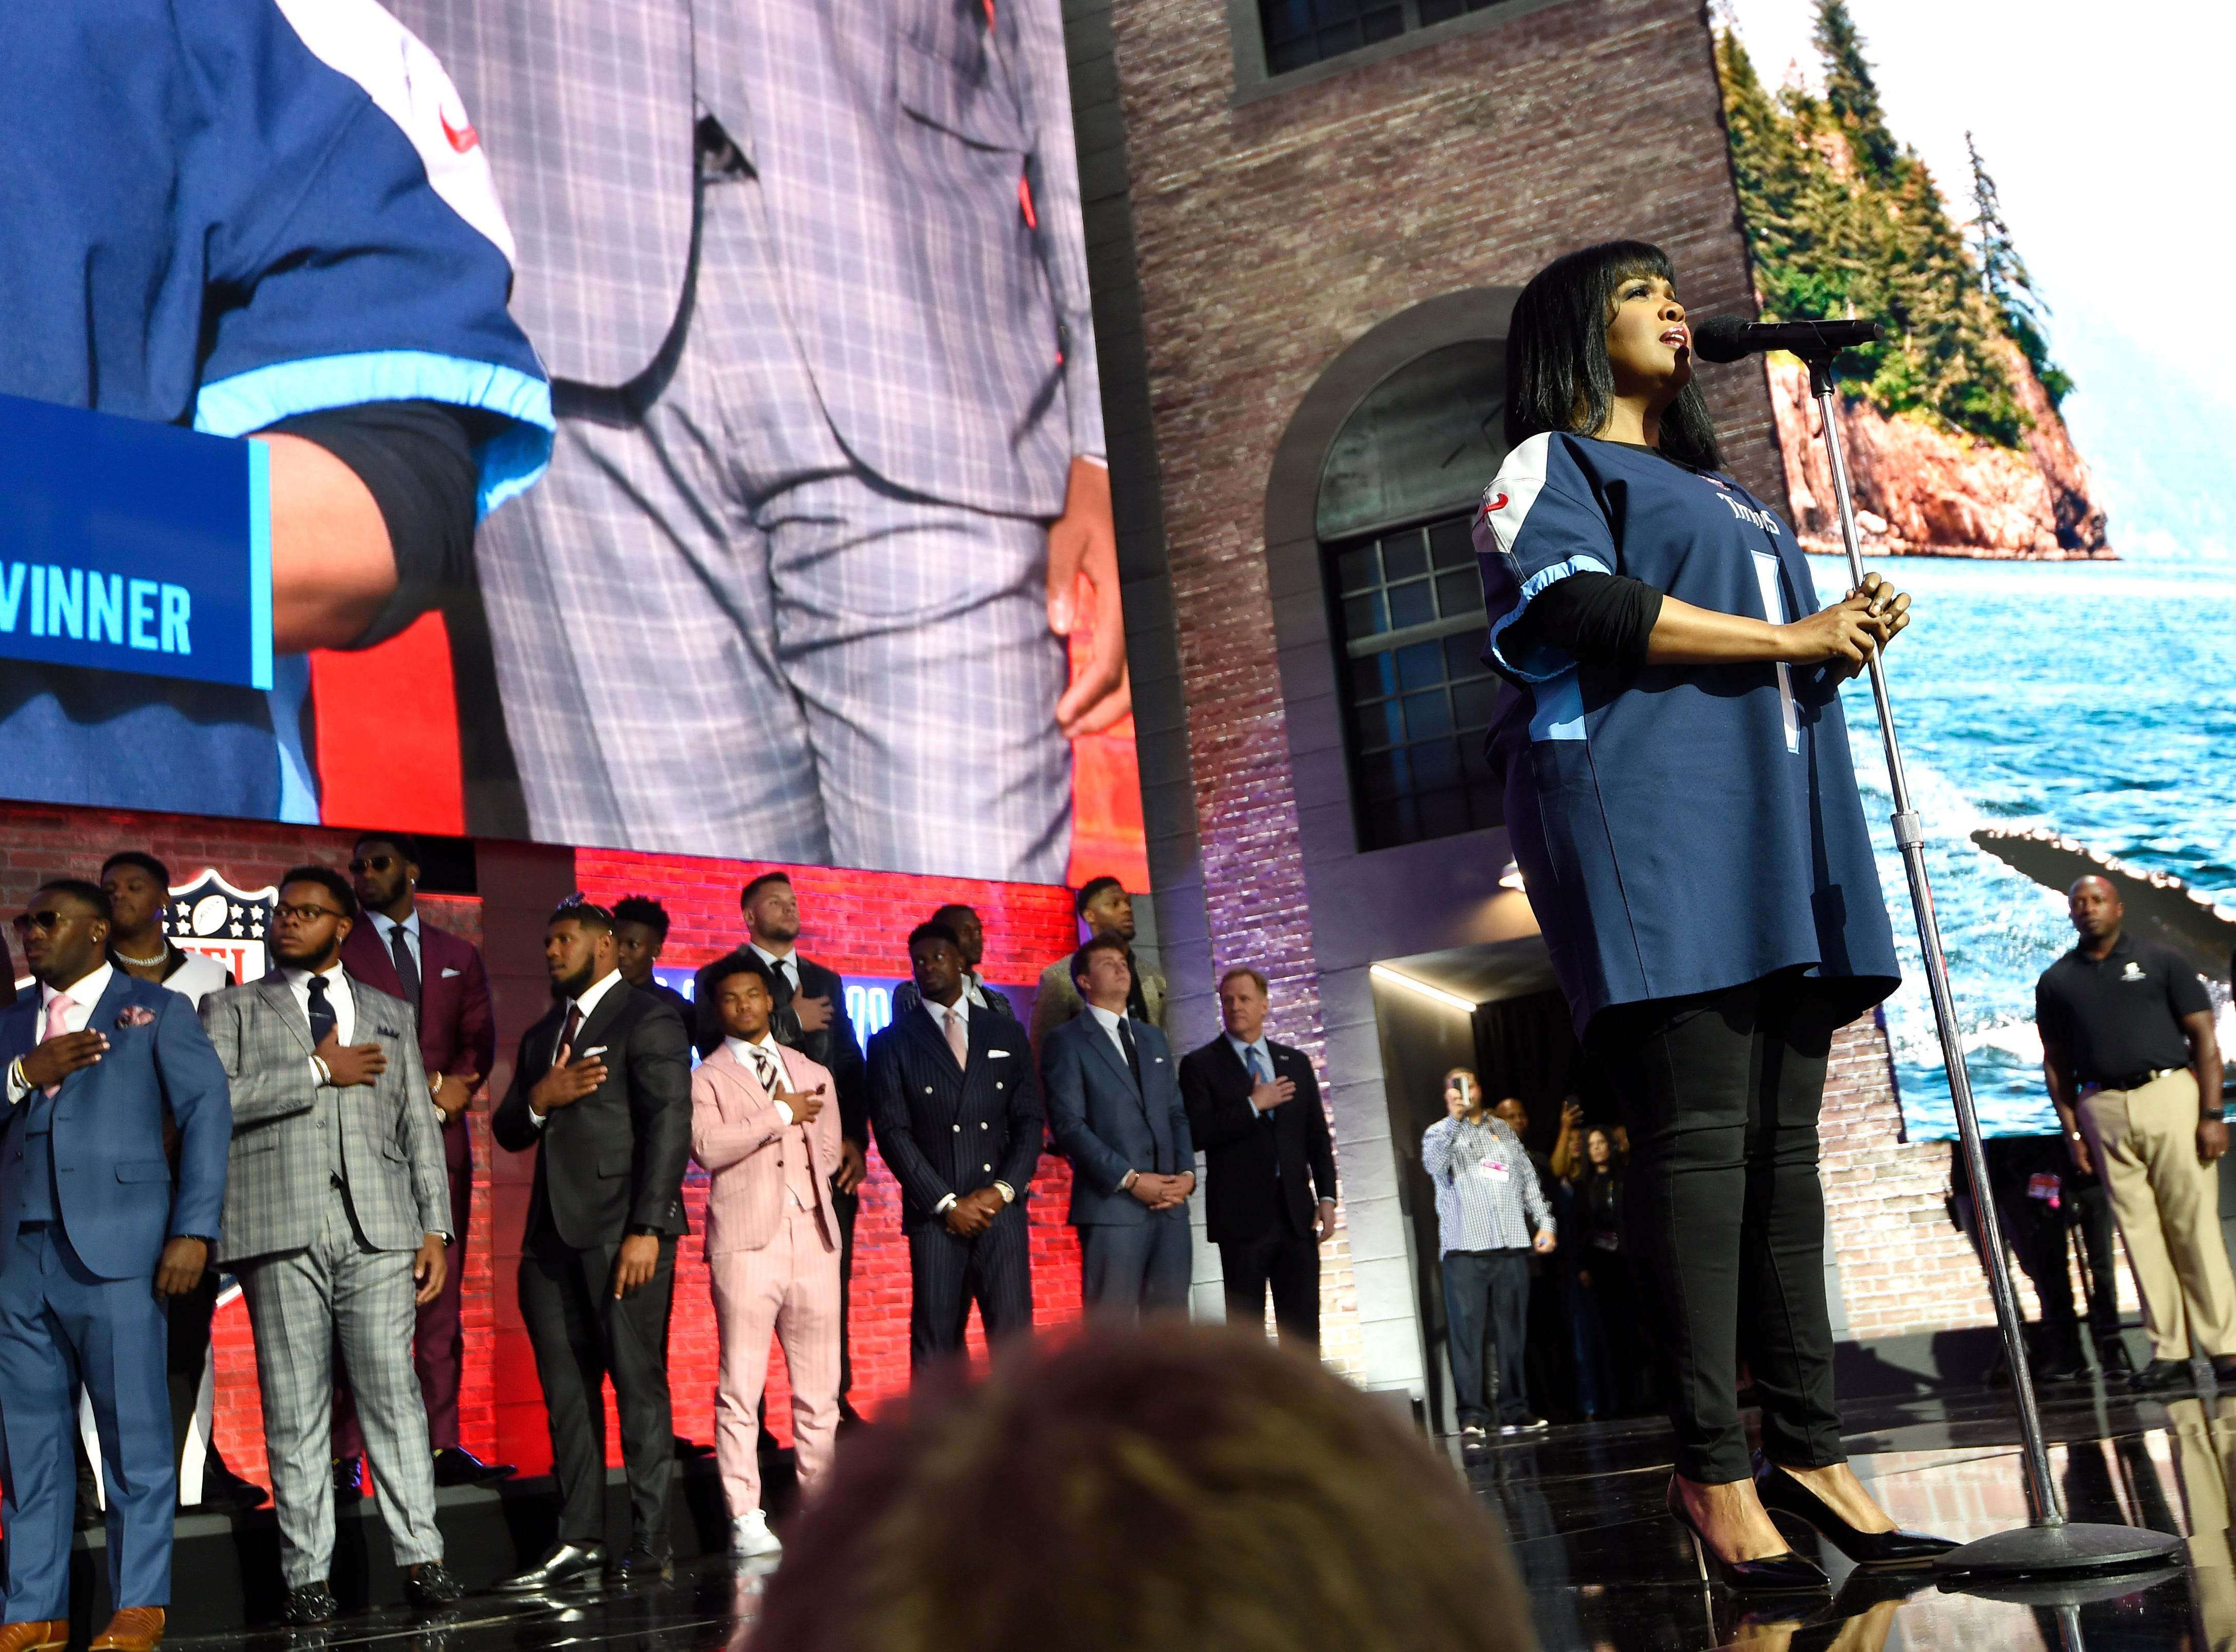 CeCe Winans sings the National Anthem in front of the draft prospects before the first round of the NFL Draft Thursday, April 25, 2019, in Nashville, Tenn.